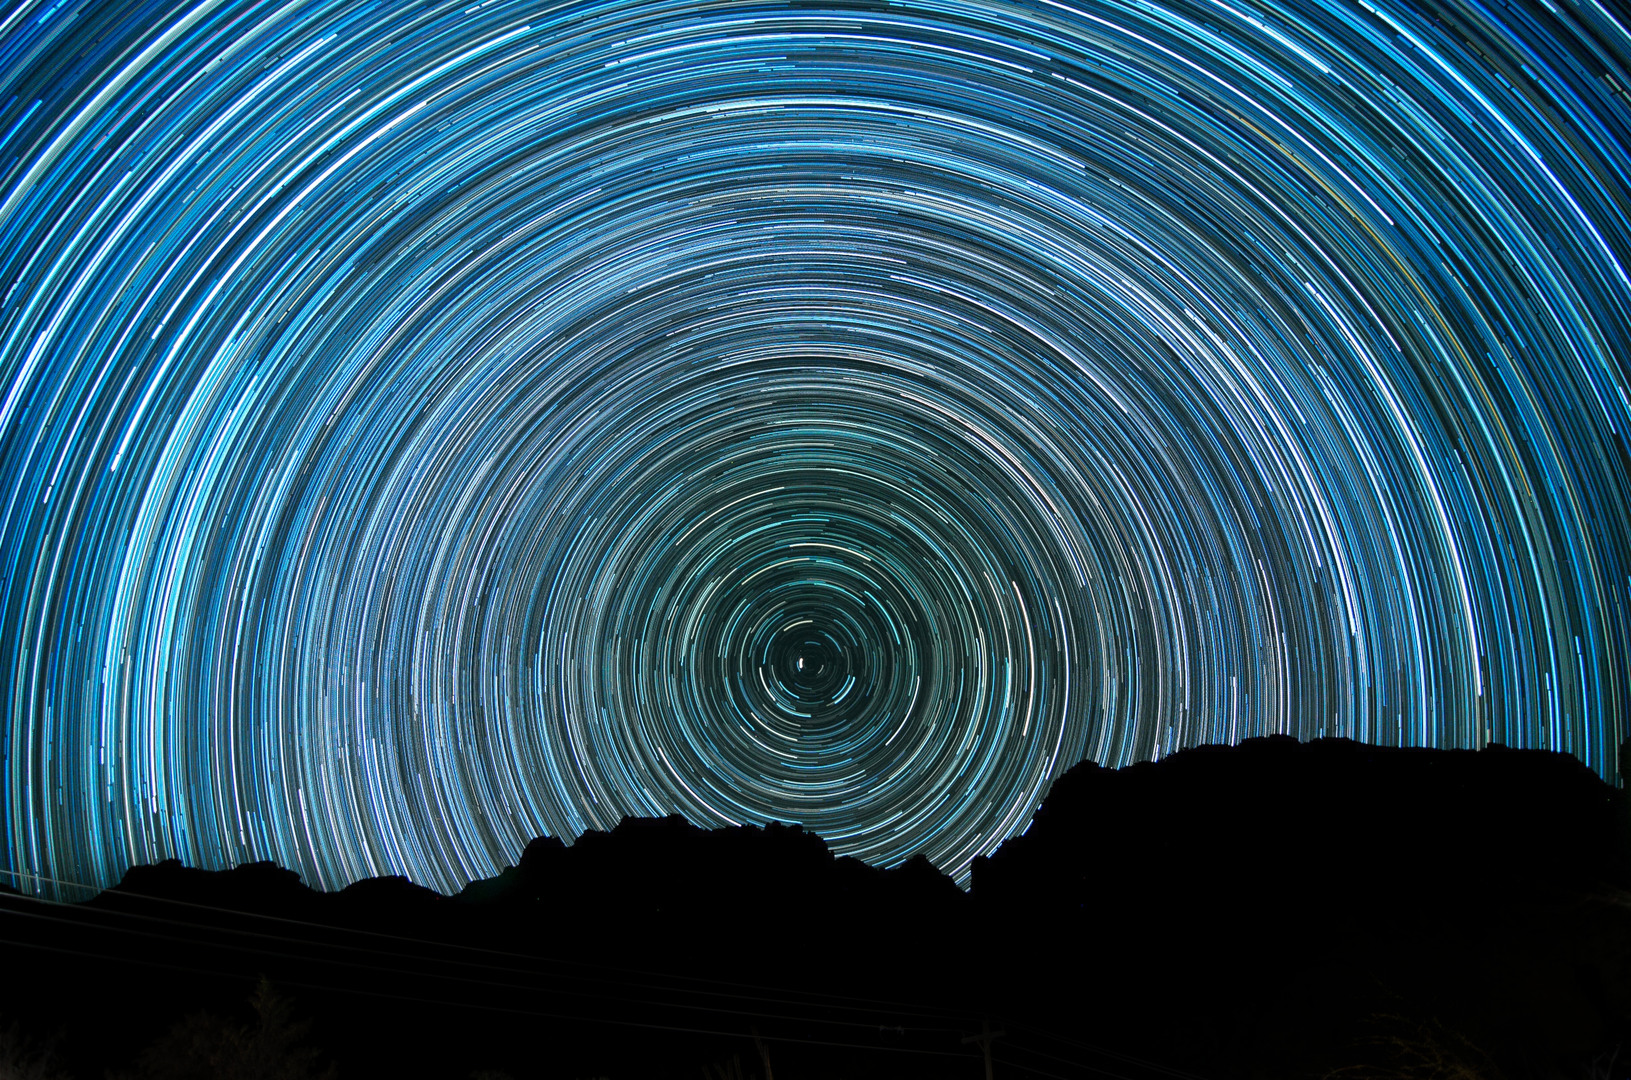 Home star Polaris Star Trail in Big Bend National Park by Costa1973 in 307